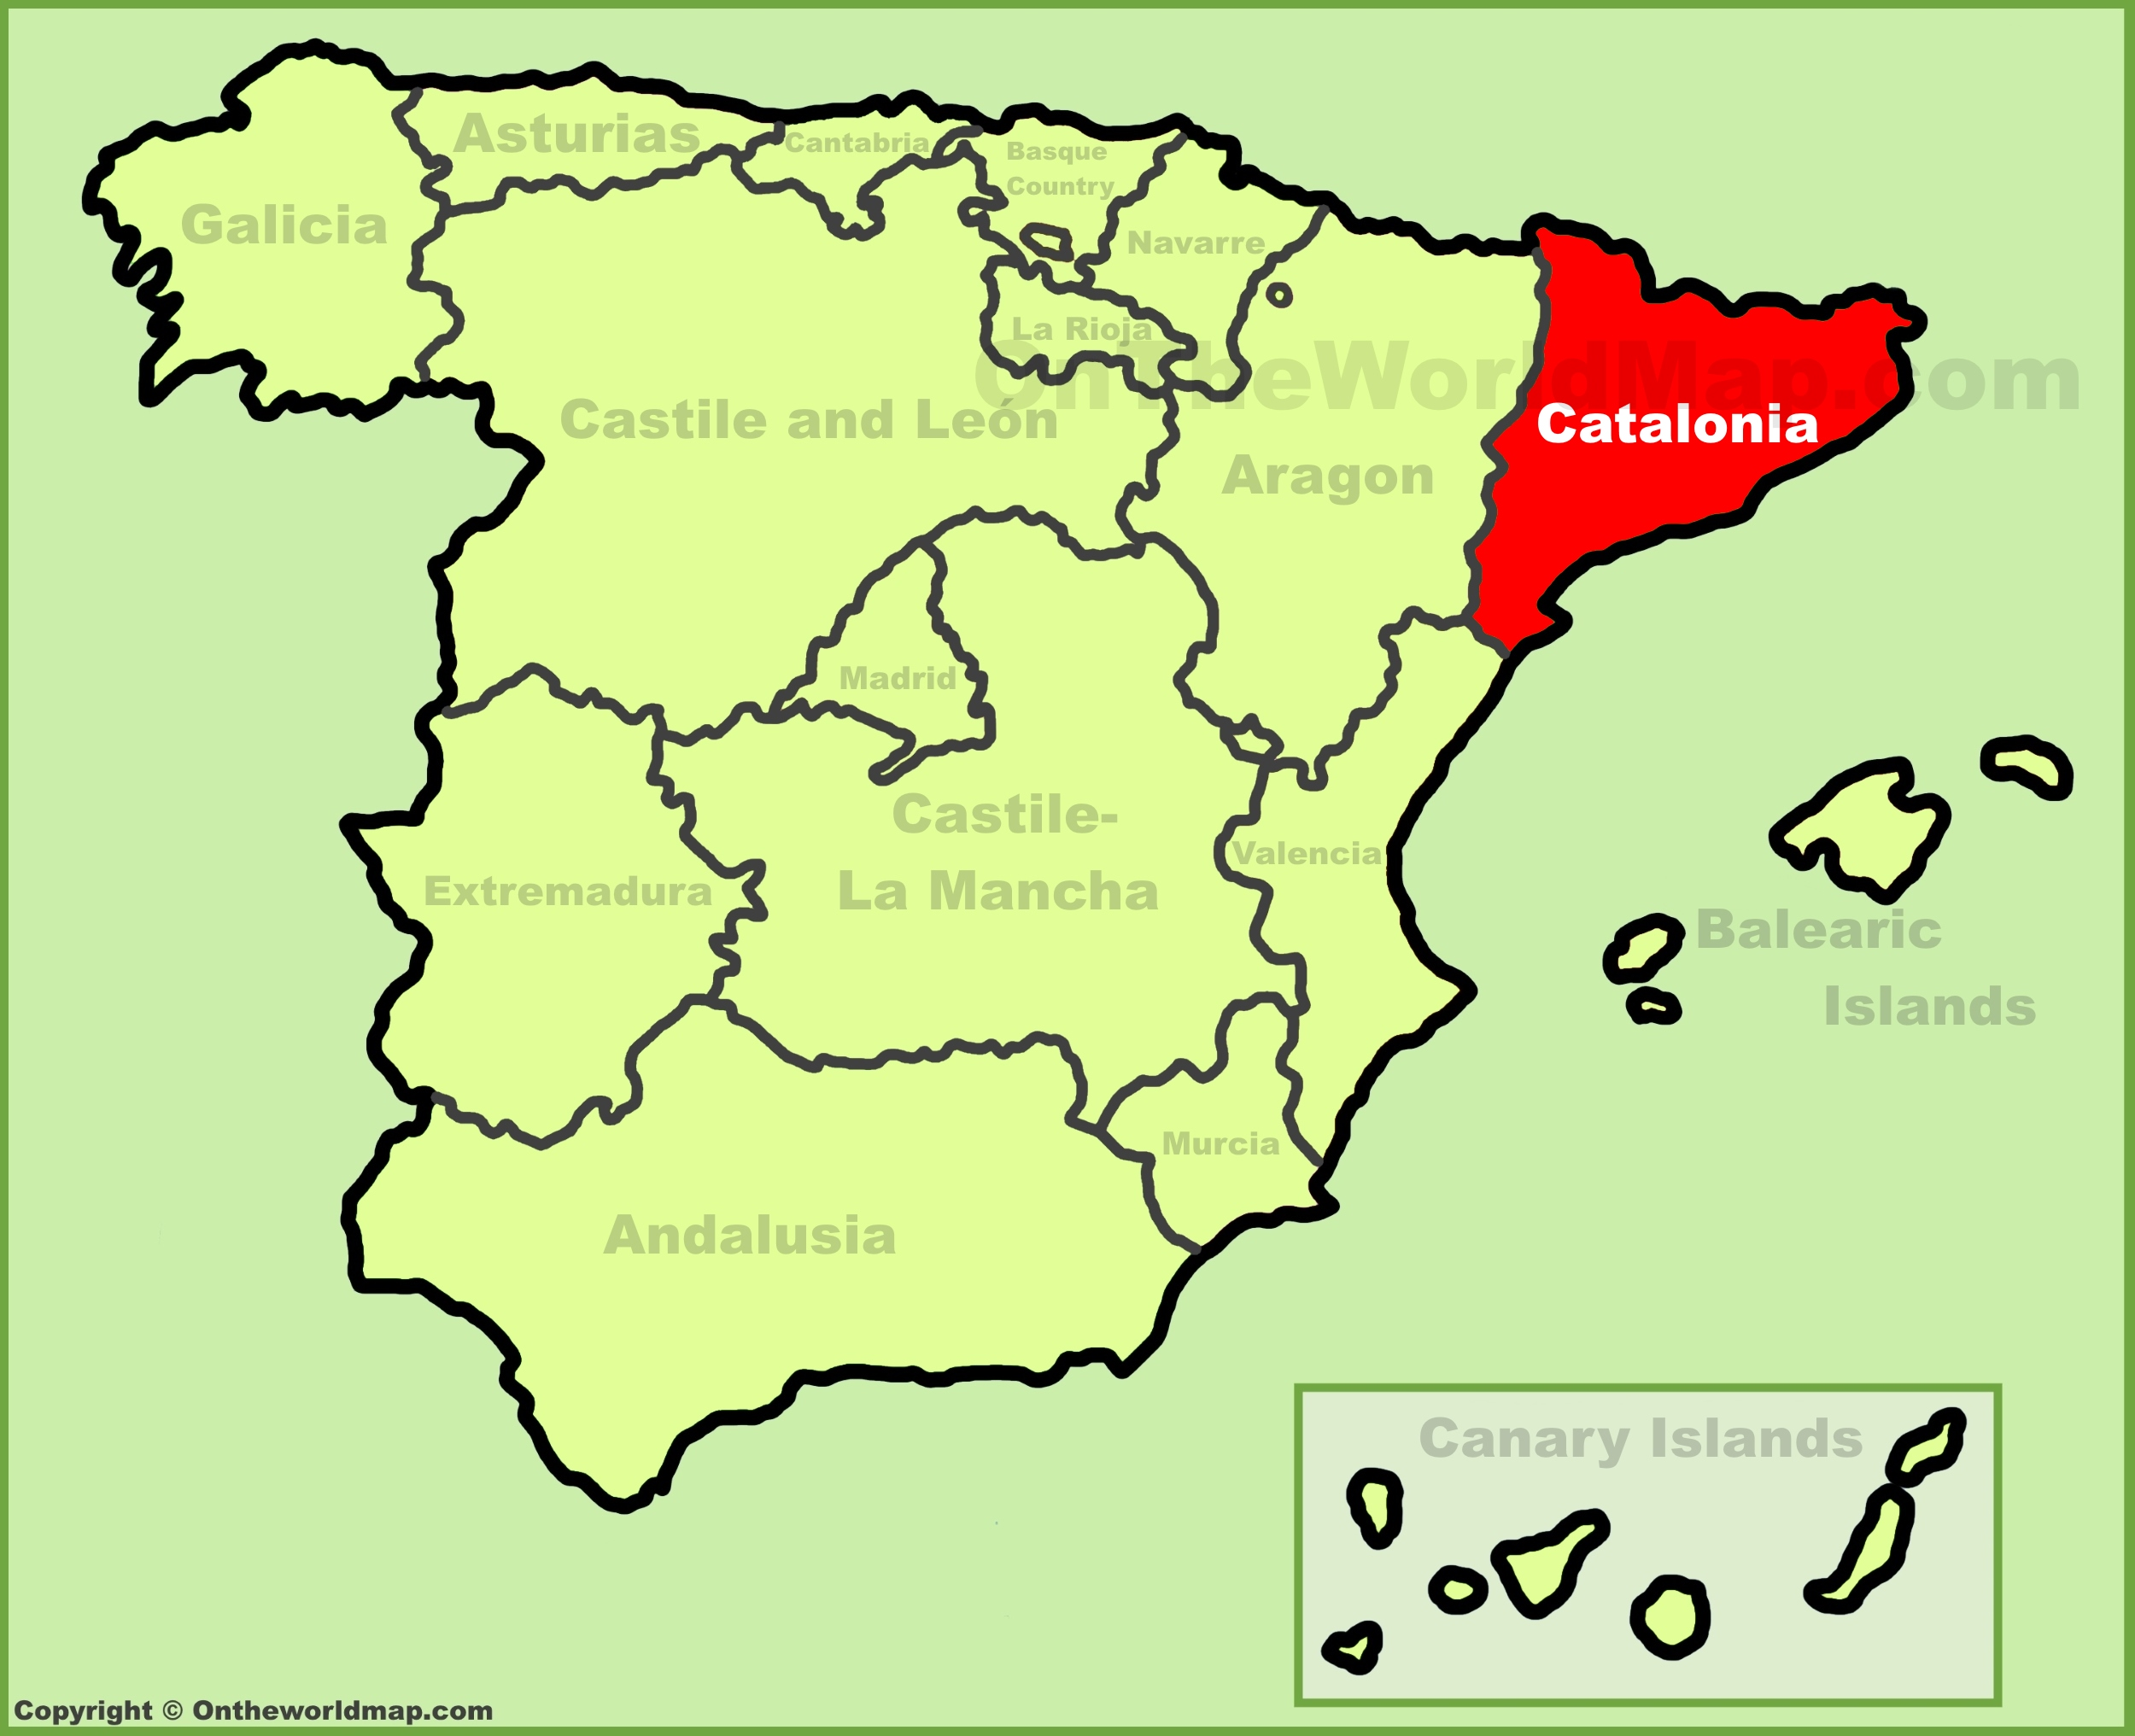 Catalan Map Of Spain.Catalonia Maps Spain Maps Of Catalonia